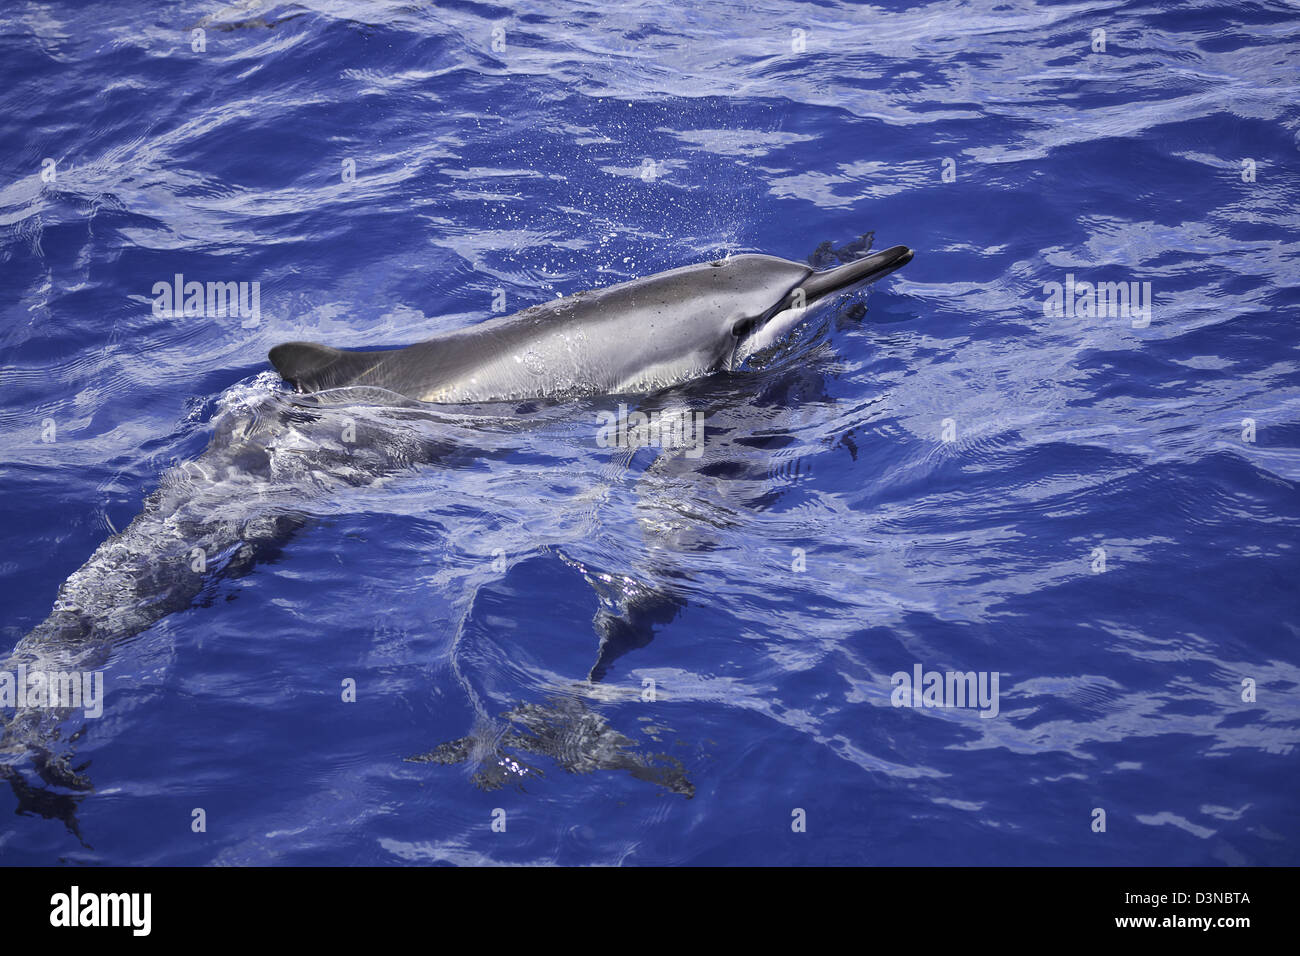 A spinner dolphin, Stenella longirostris, surfaces for a breath off the island of Maui, Hawaii. - Stock Image